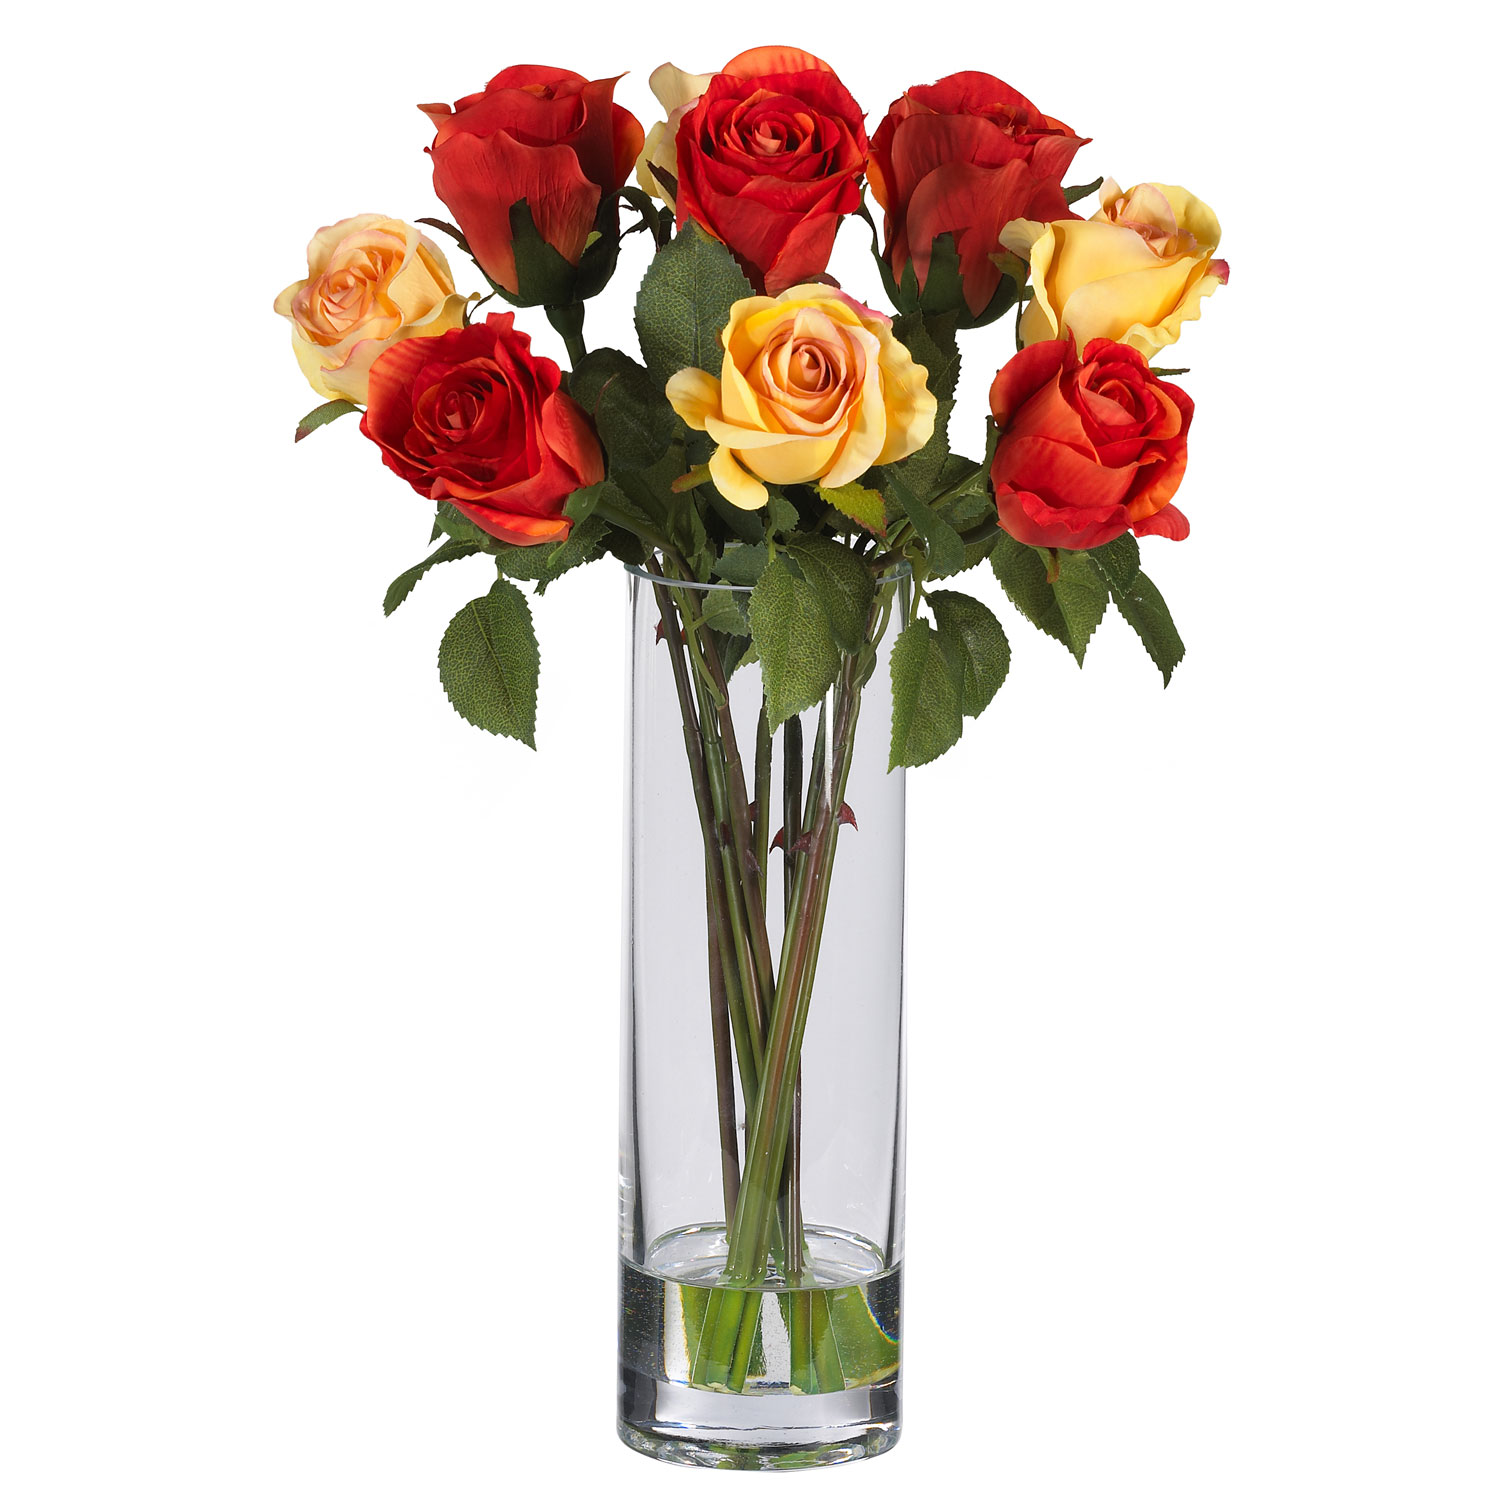 Roses wglass vase silk flower arrangement silk specialties roses wglass vase silk flower arrangement mightylinksfo